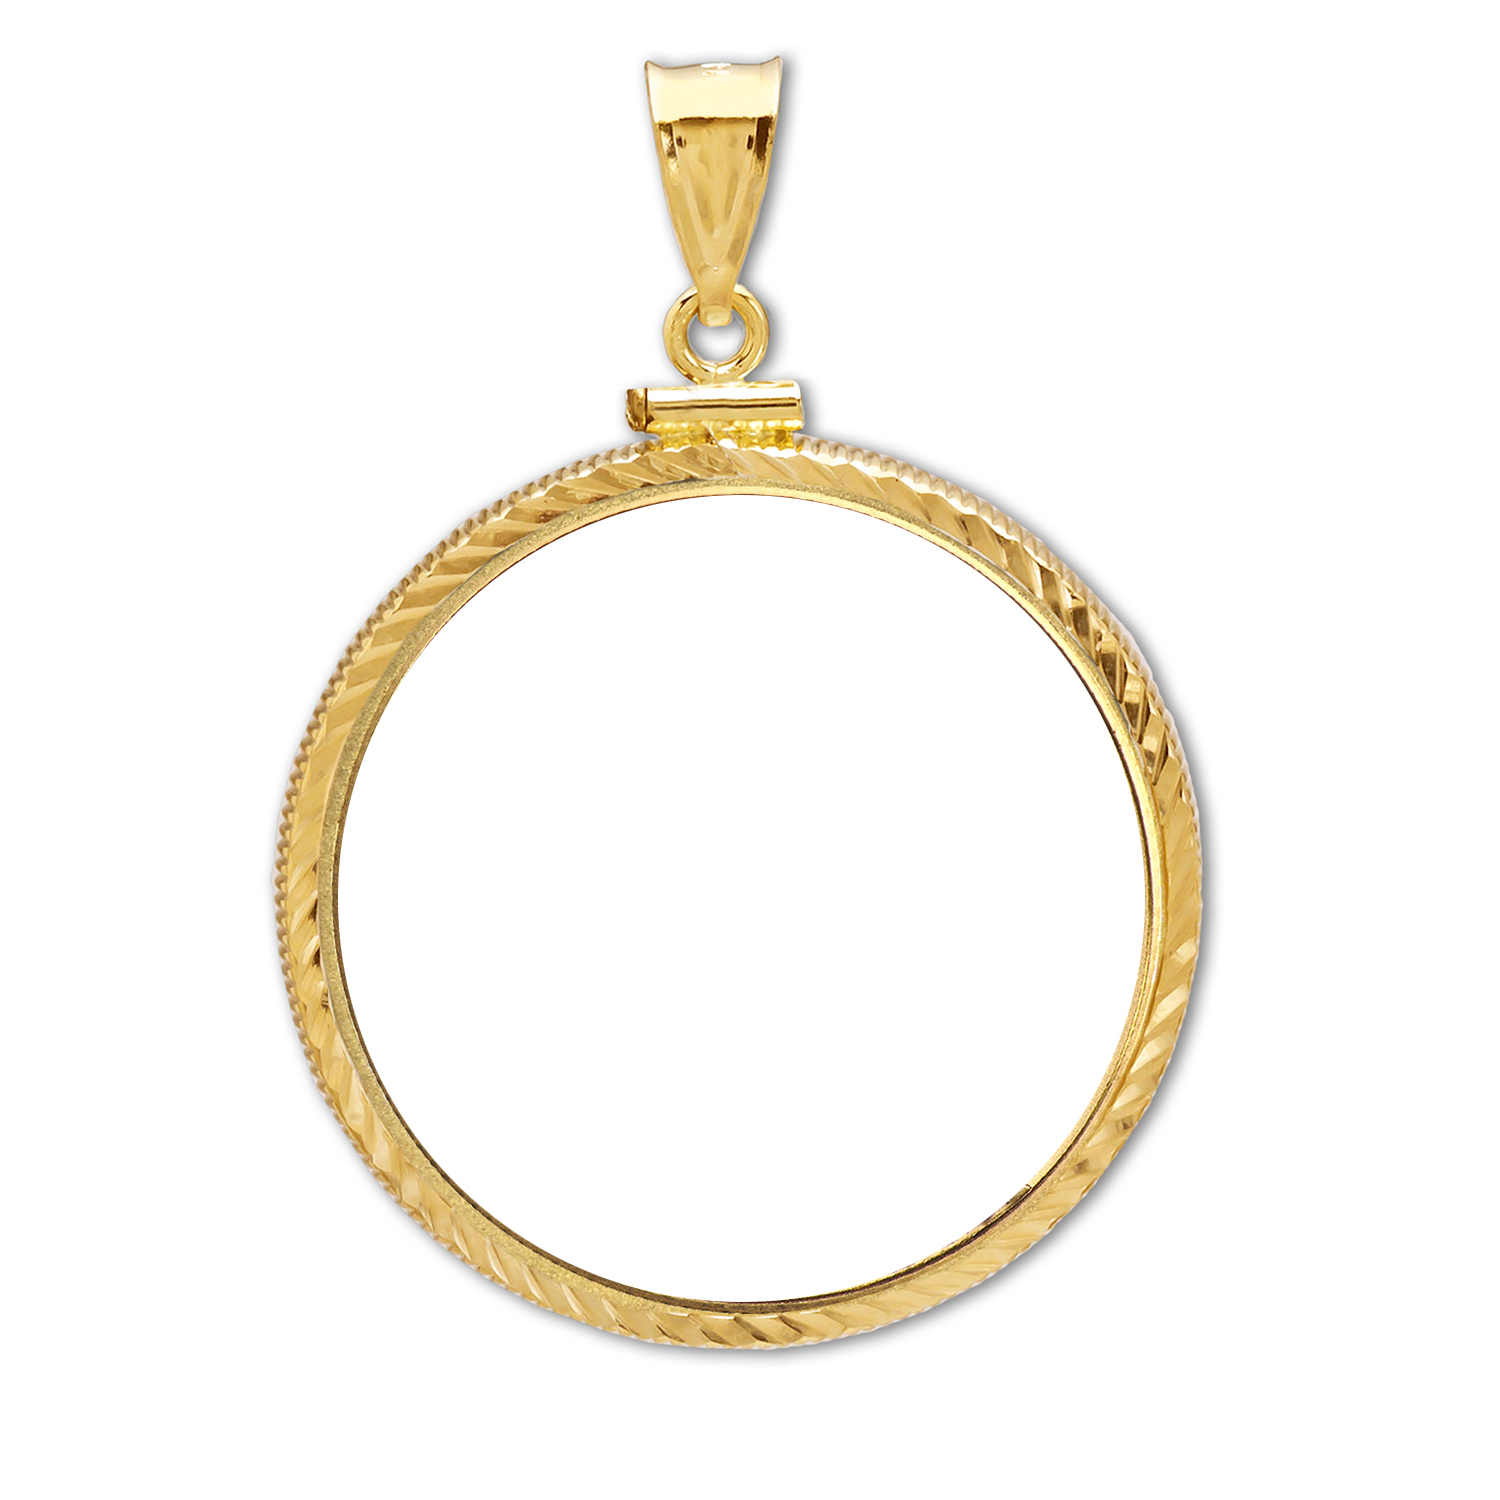 14K Gold Screw-Top Diamond-Cut Coin Bezel - 34.2 mm